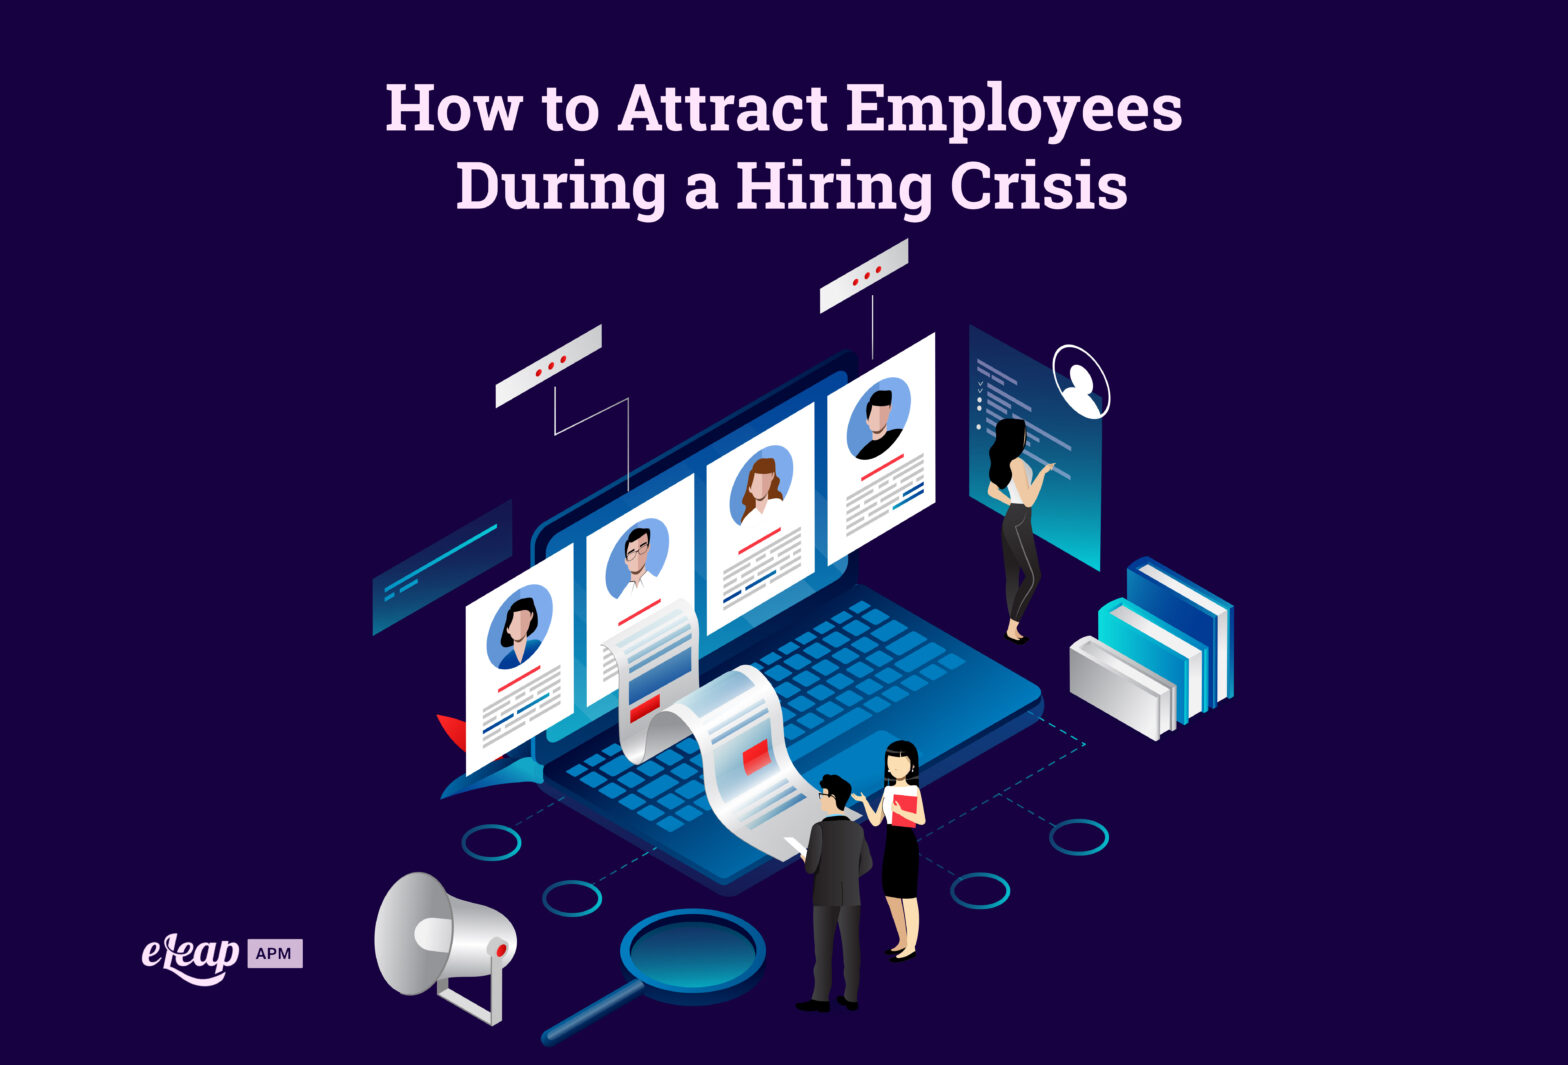 How to Attract Employees During a Hiring Crisis